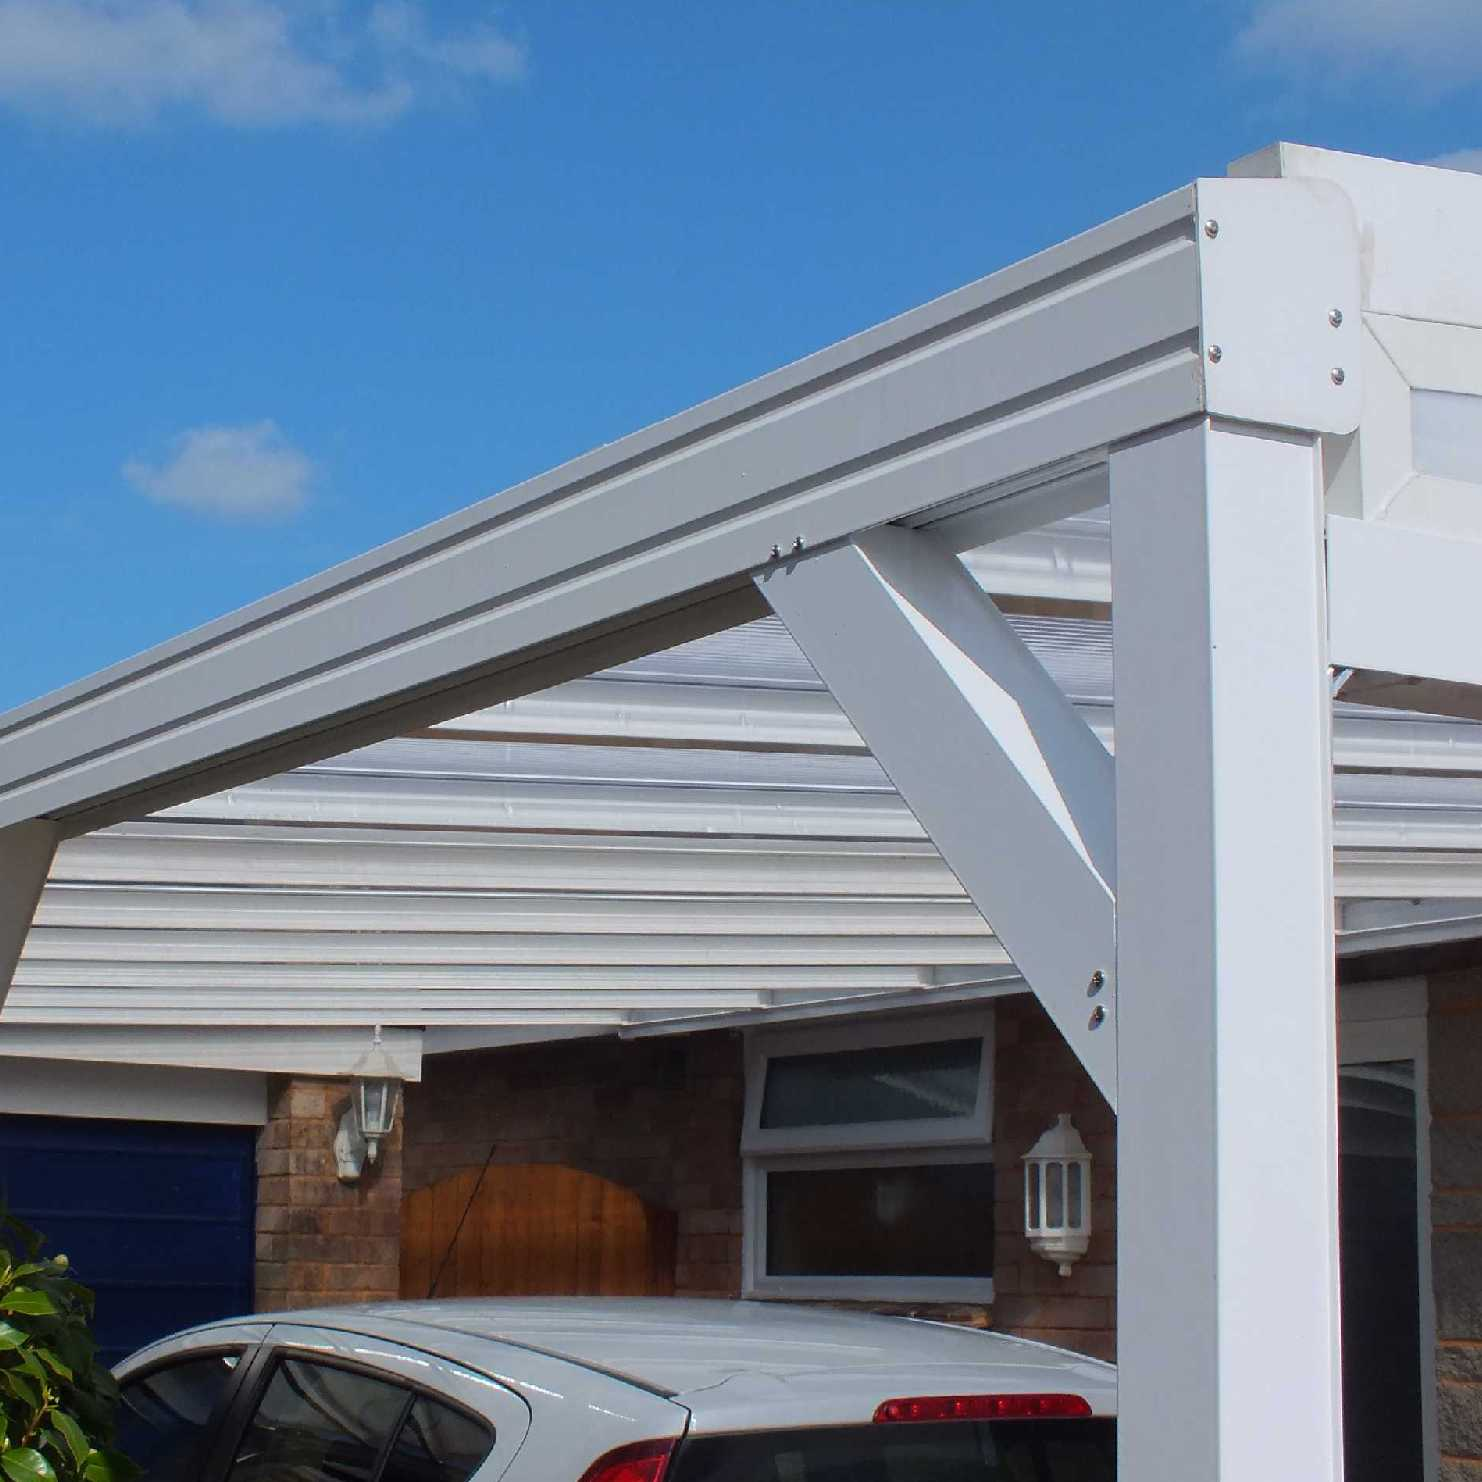 Buy Omega Smart Lean-To Canopy, Anthracite Grey, 16mm Polycarbonate Glazing - 12.0m (W) x 1.5m (P), (5) Supporting Posts online today